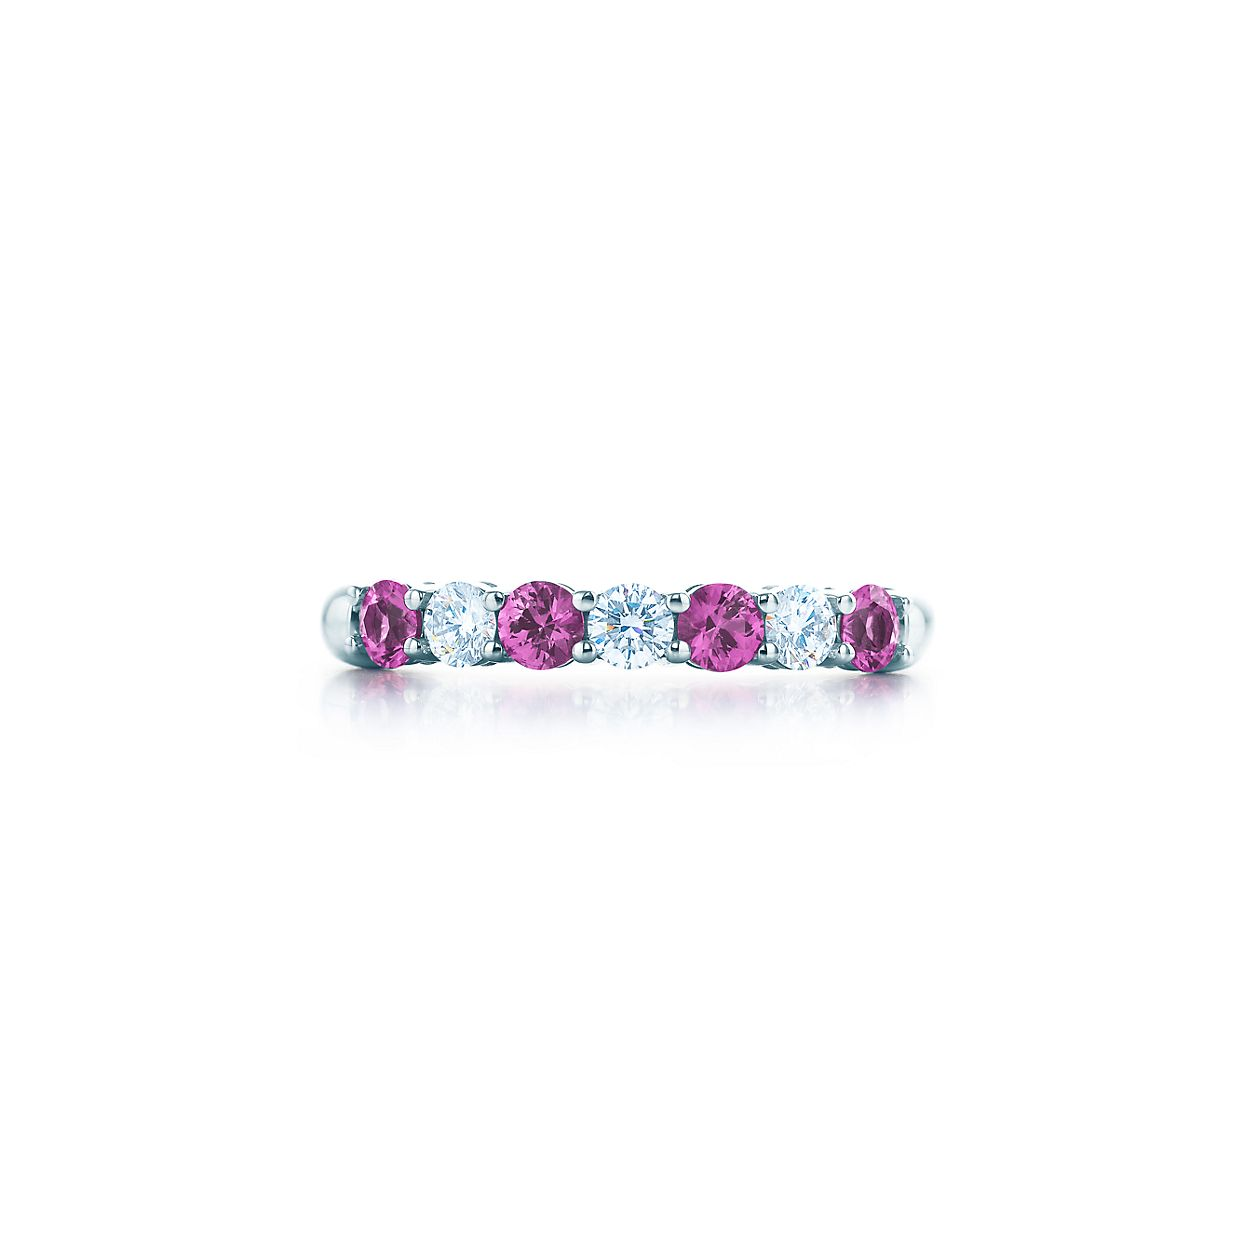 micropave ring rings in jewelry sapphire white diamond pink wedding gold promise classy and sromgfo